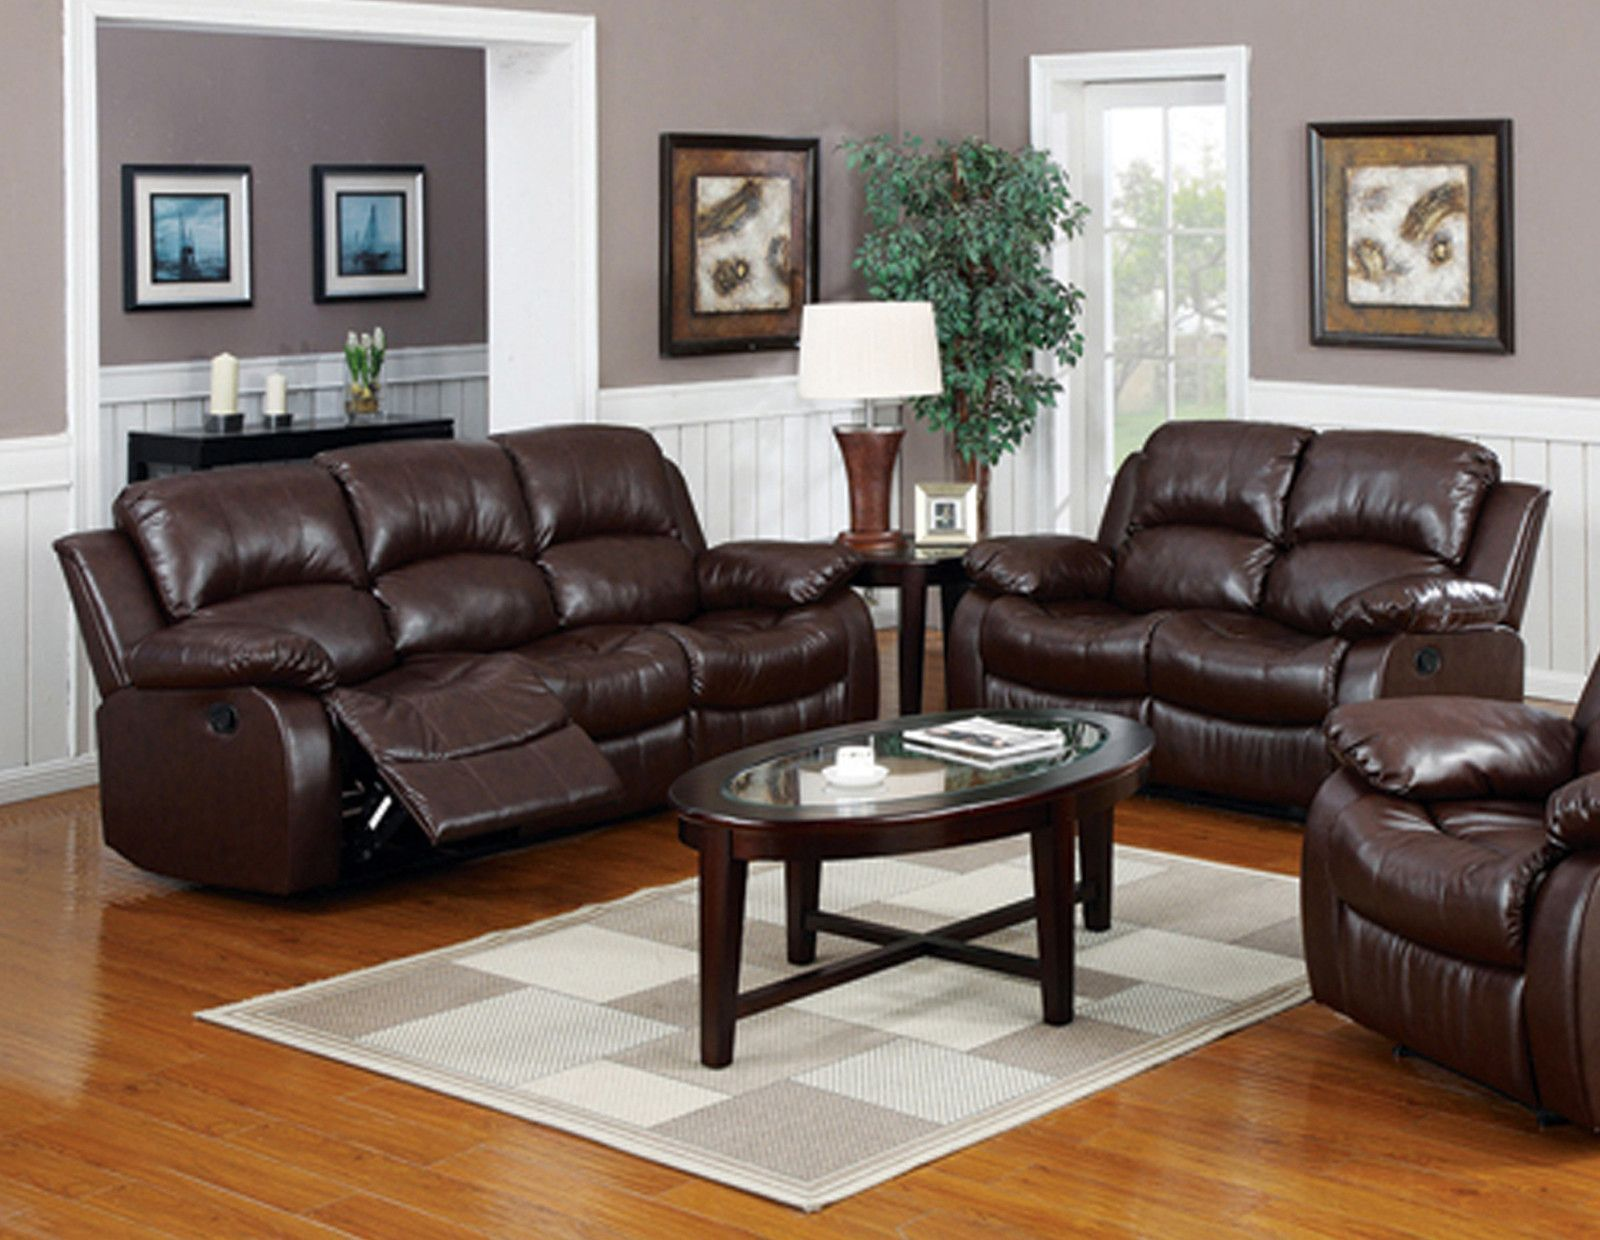 Phoenix 2 Piece Bonded Leather Living Room Set